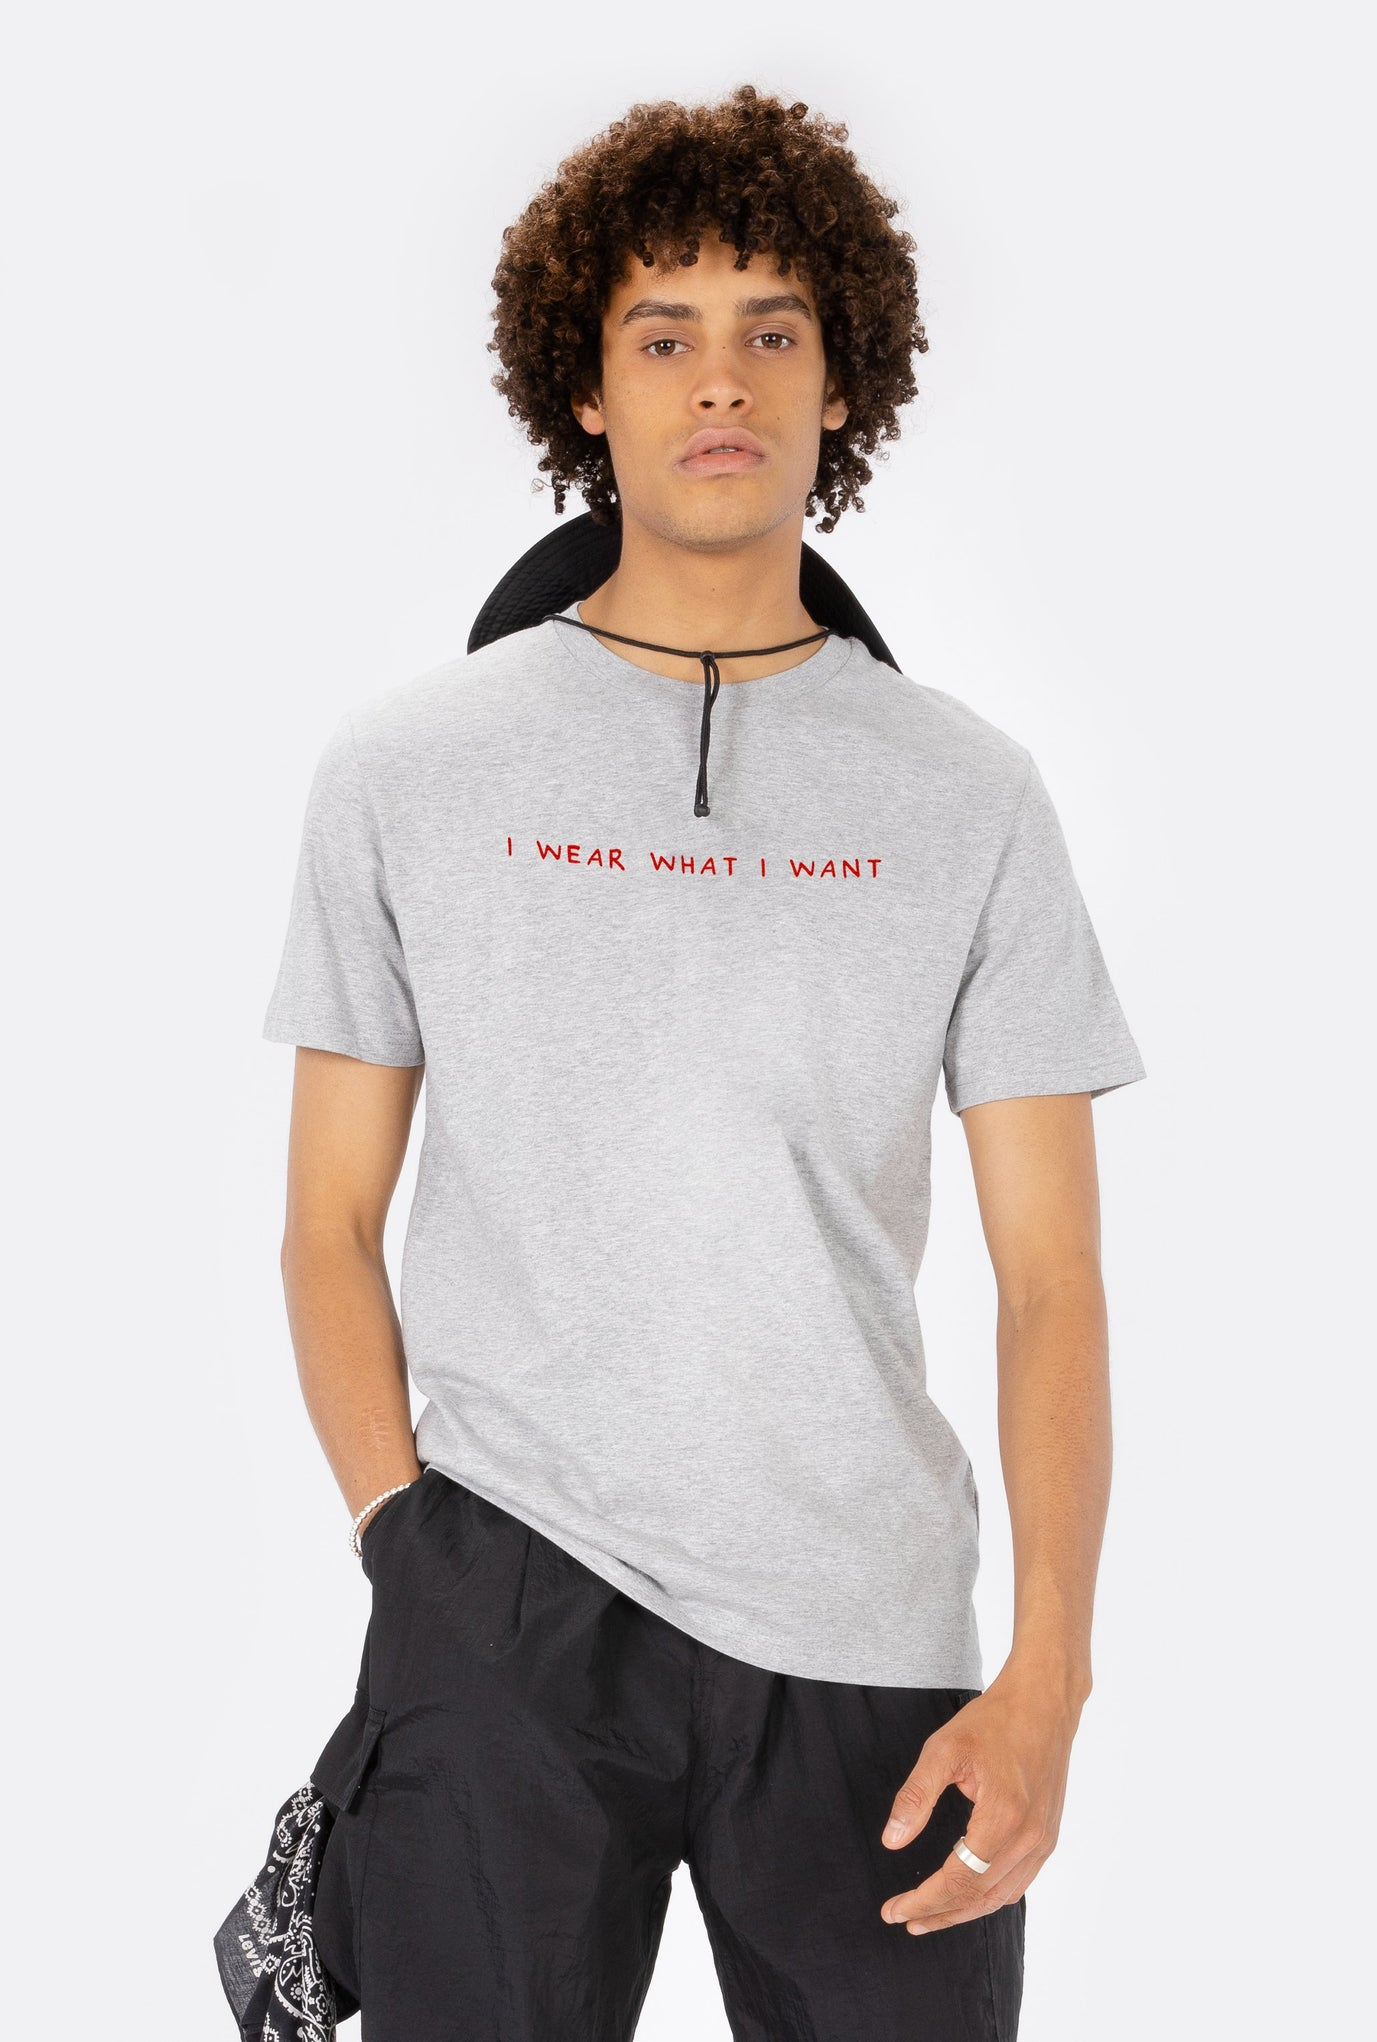 T-Shirt S/S I Wear What I Want - Embroidered